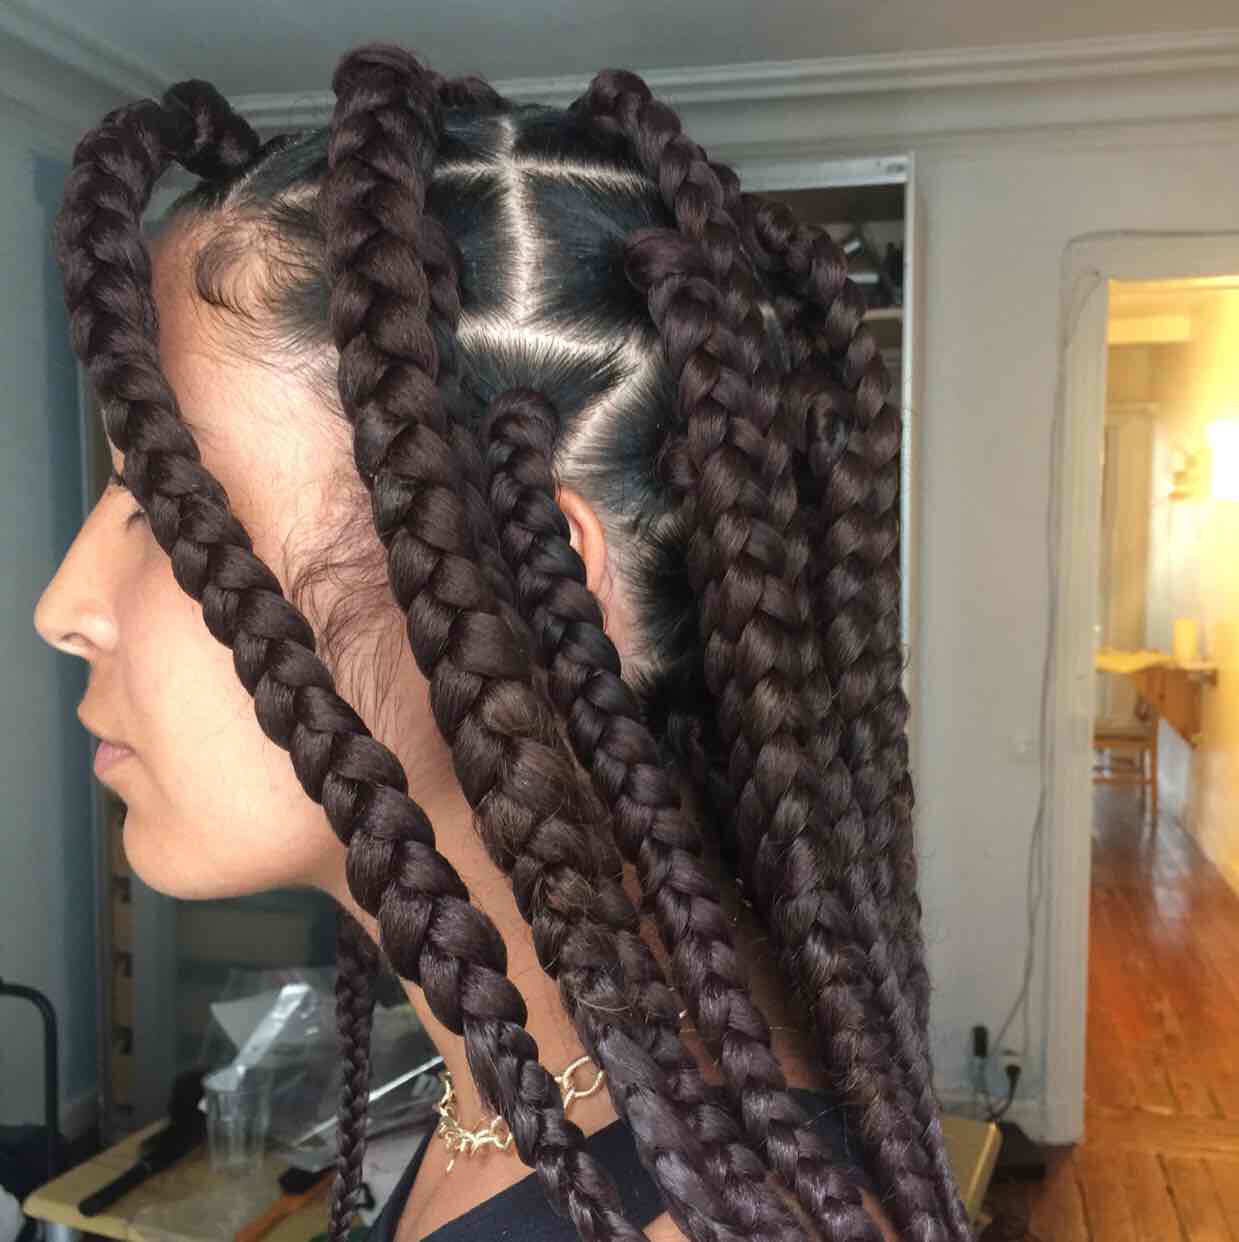 salon de coiffure afro tresse tresses box braids crochet braids vanilles tissages paris 75 77 78 91 92 93 94 95 YGTHLEYW